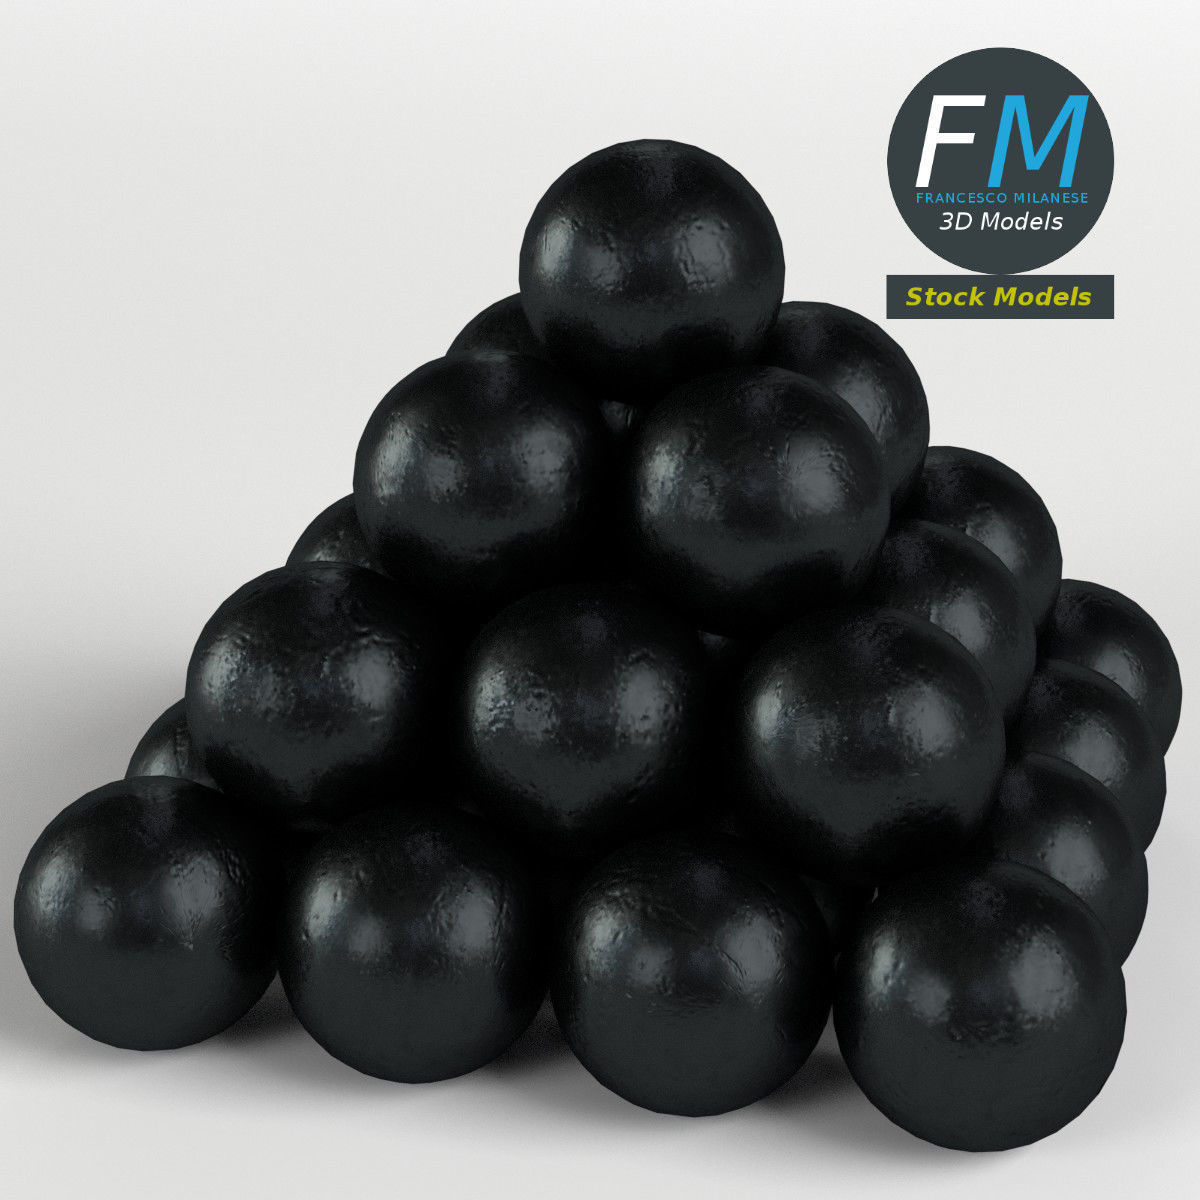 Cannonballs stack 1